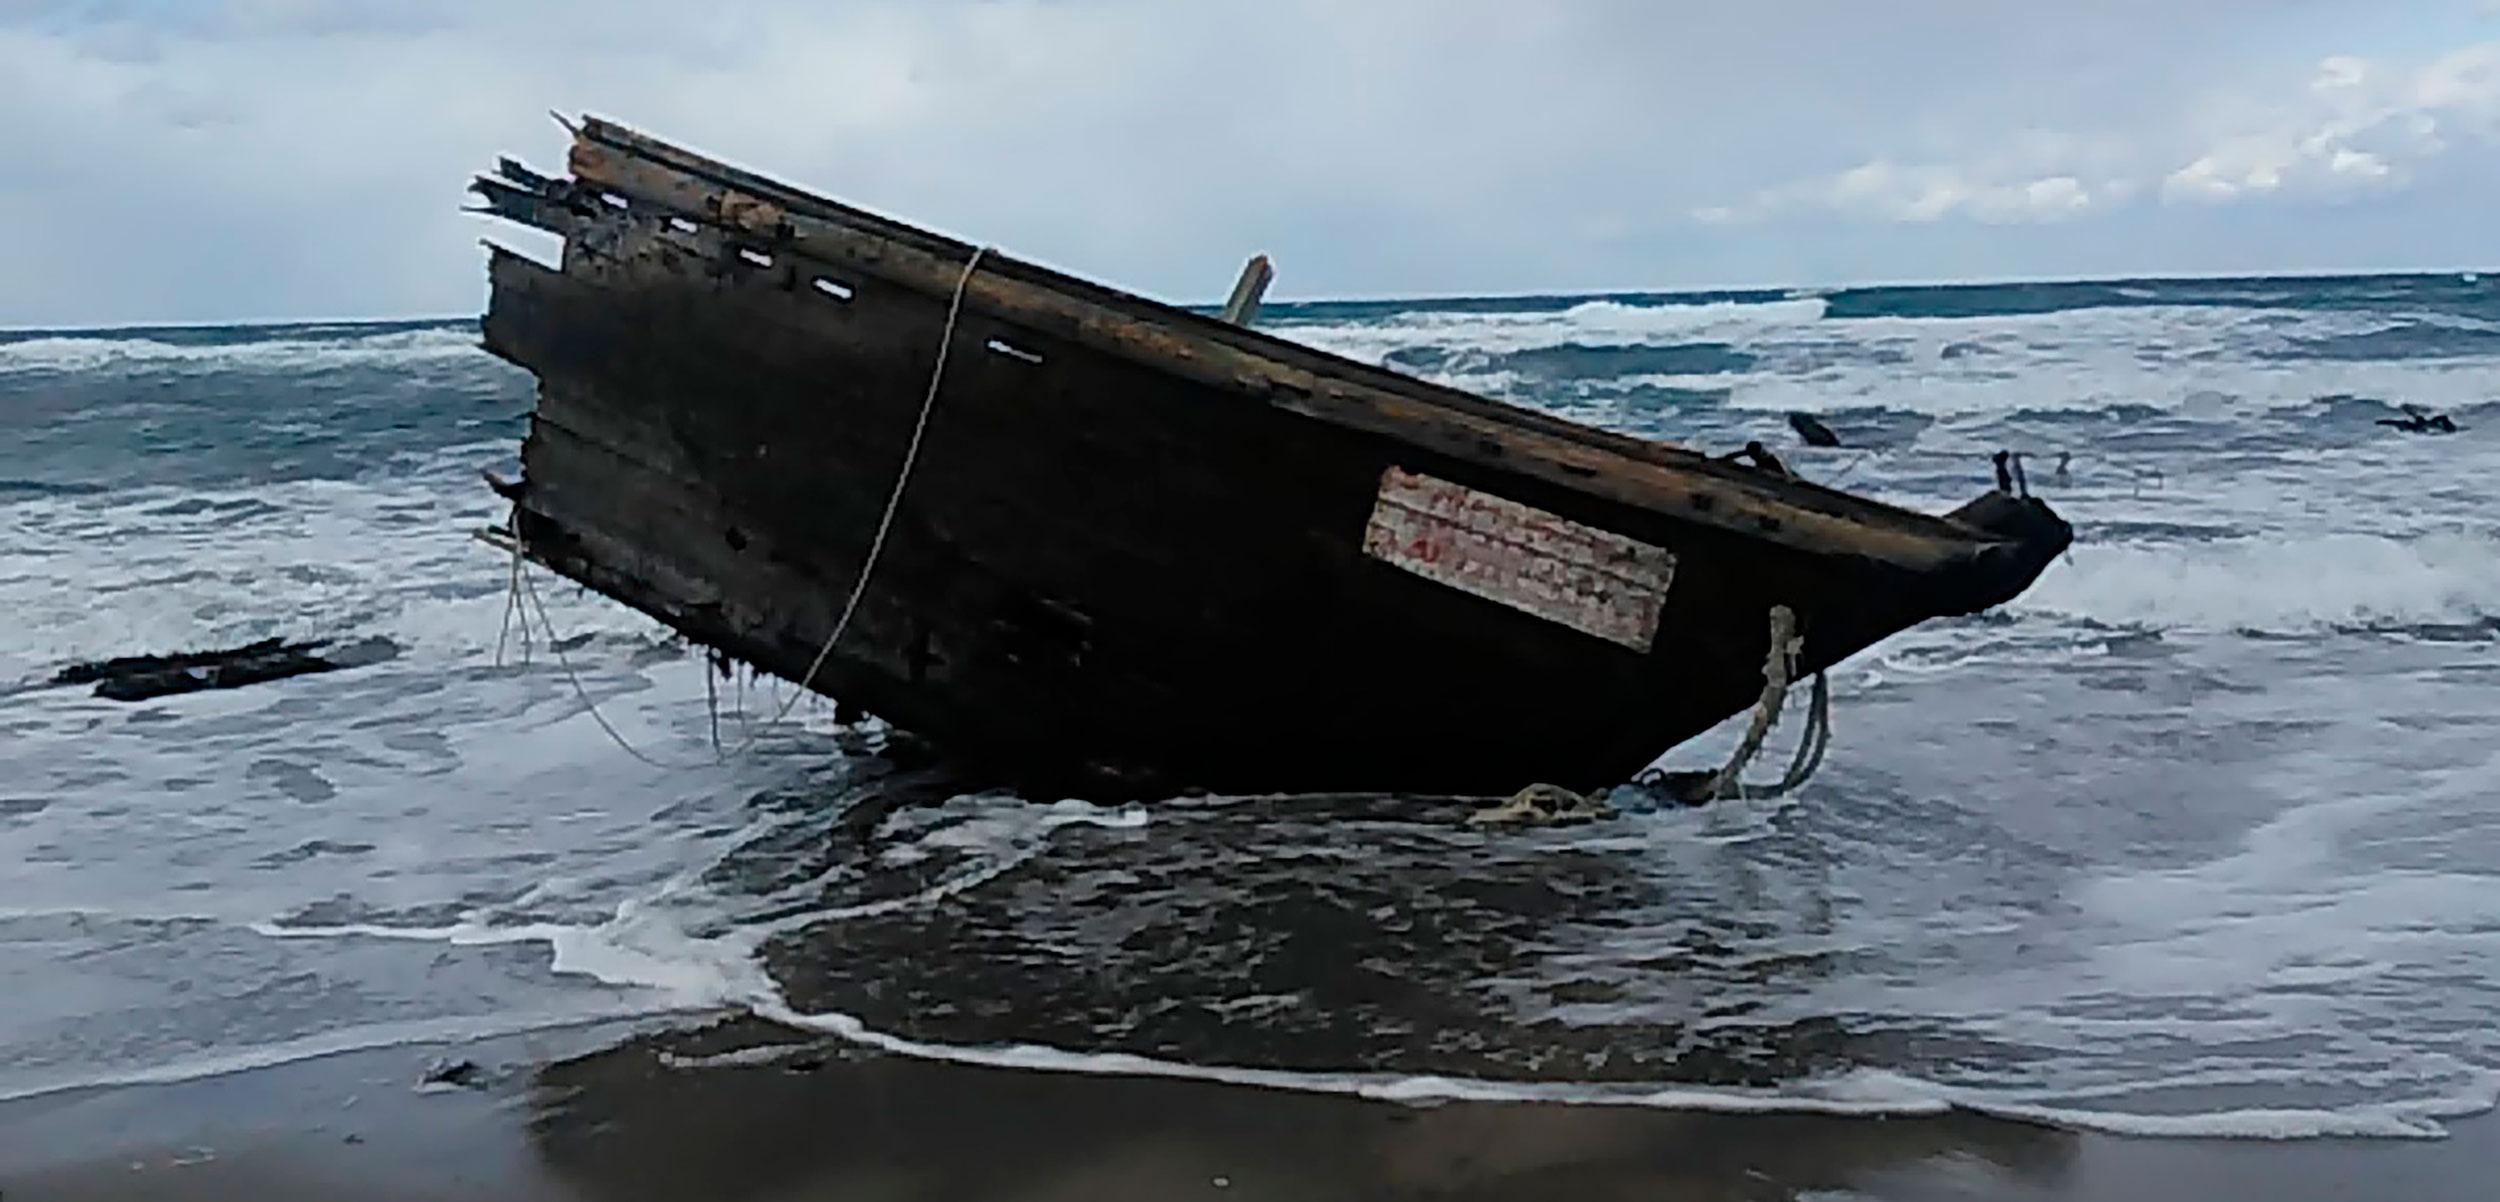 In December 2019, a ship washed up on Sado Island, Japan